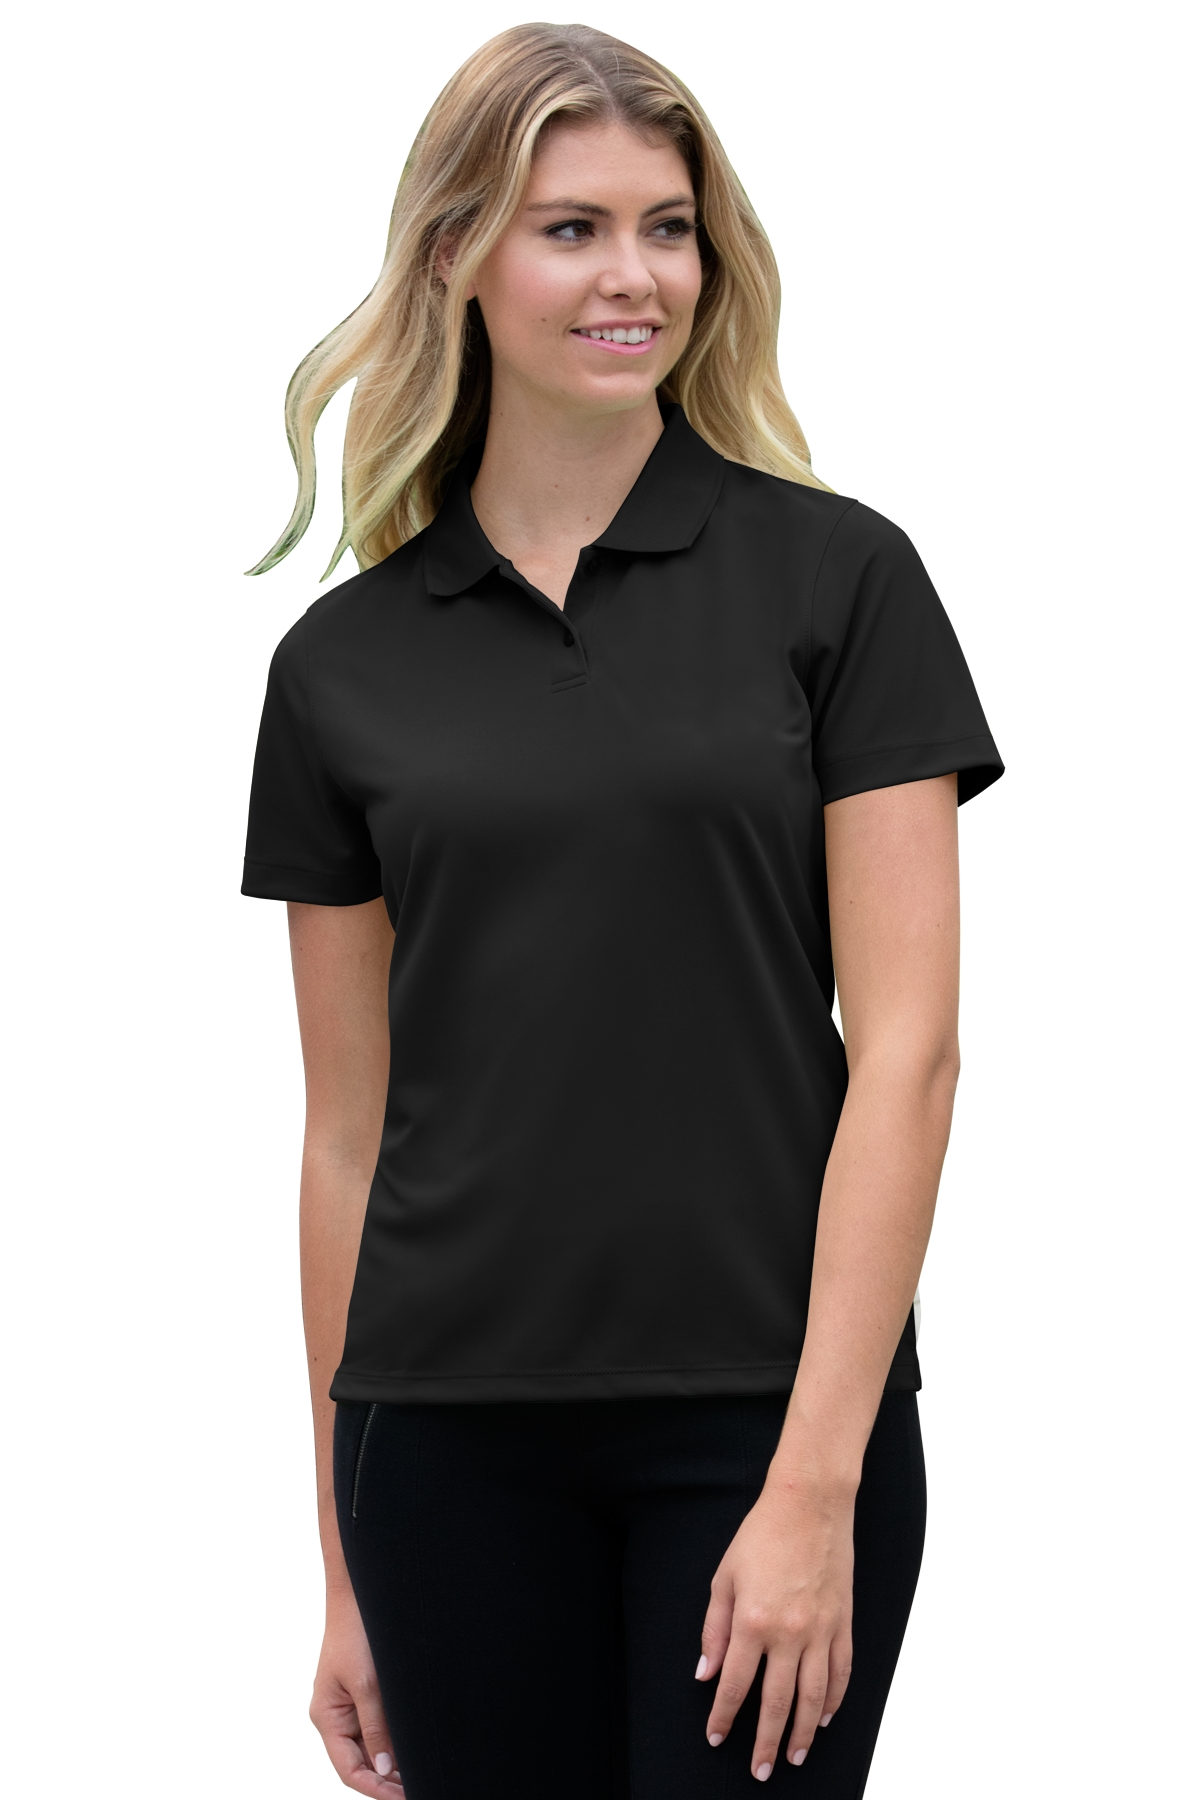 Vansport 2601 - Women's Omega Solid Mesh Tech Polo